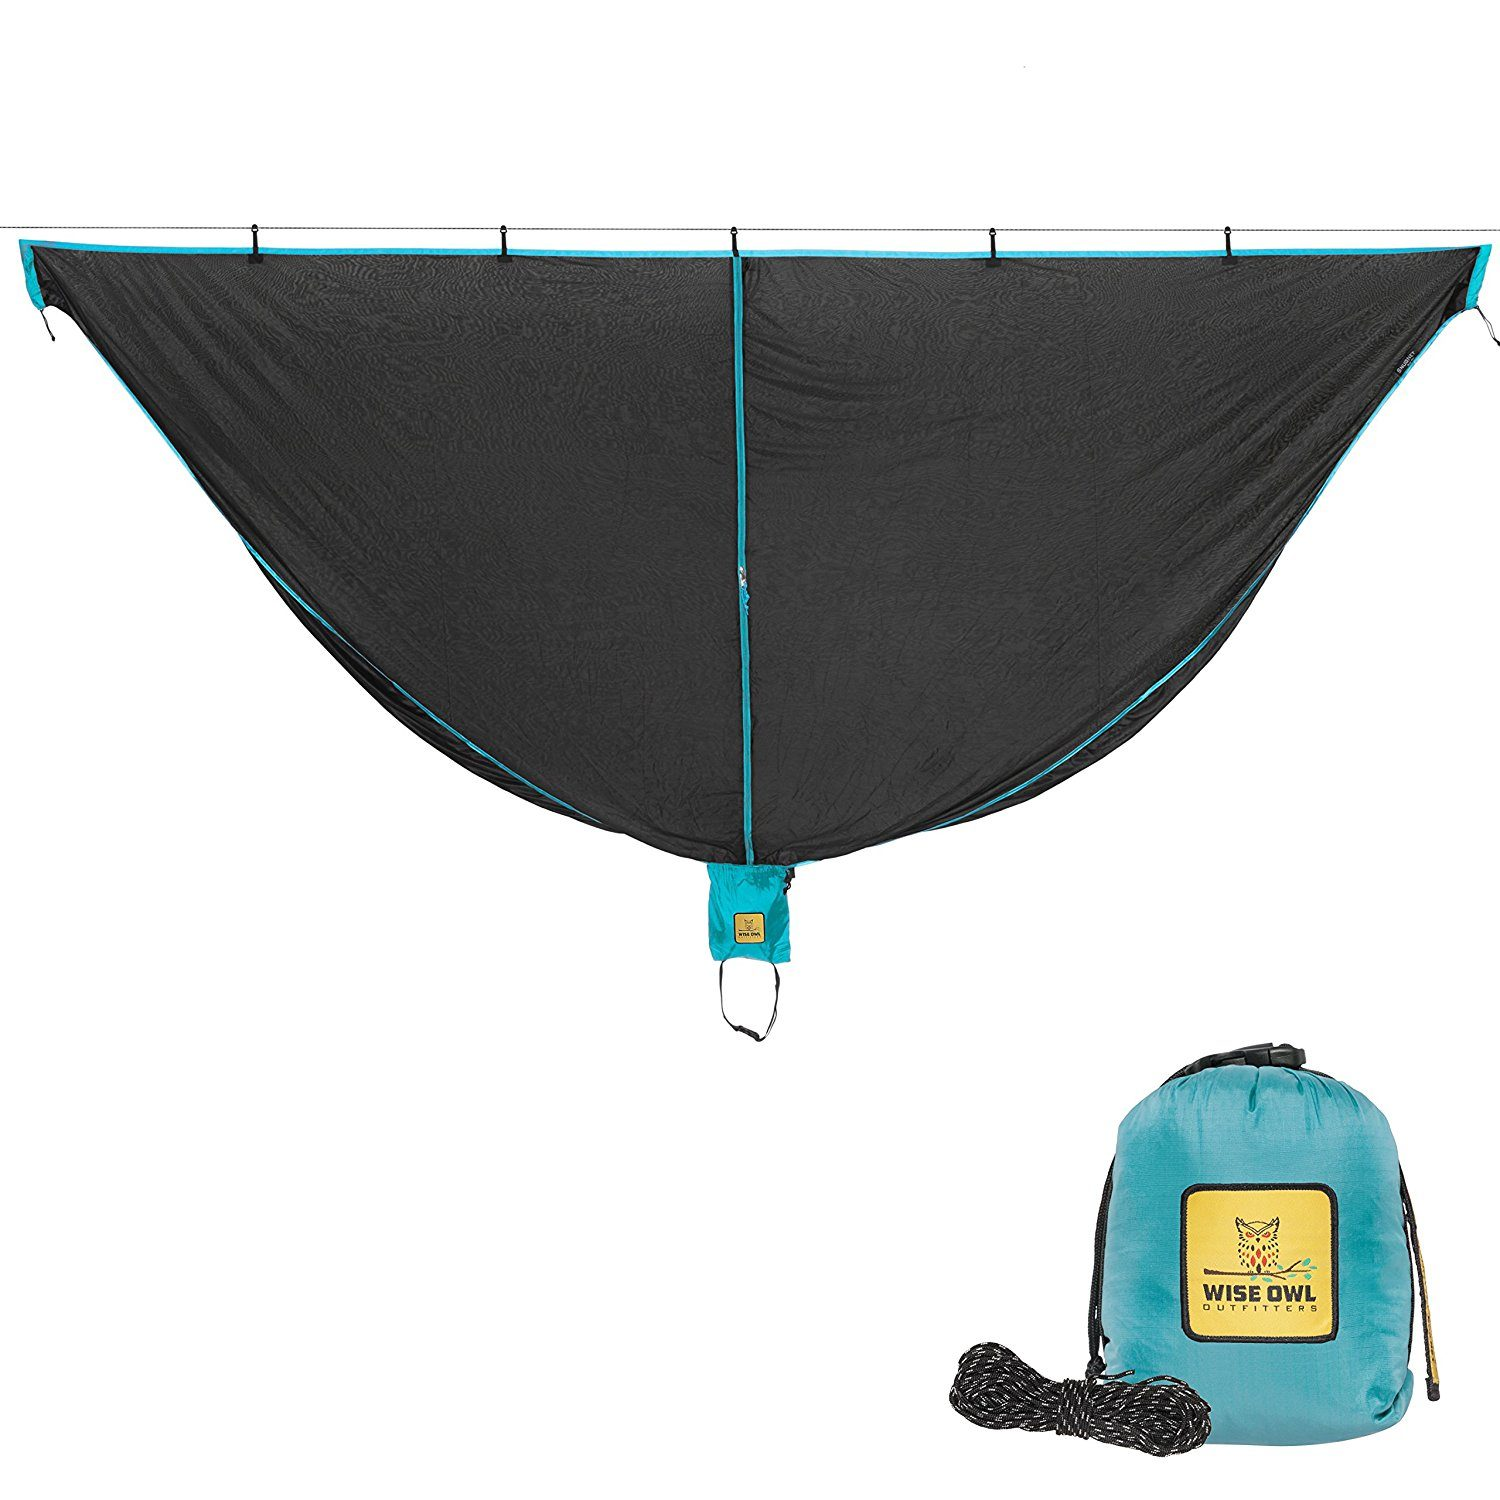 Hammock Bug Net SnugNet by Wise Owl